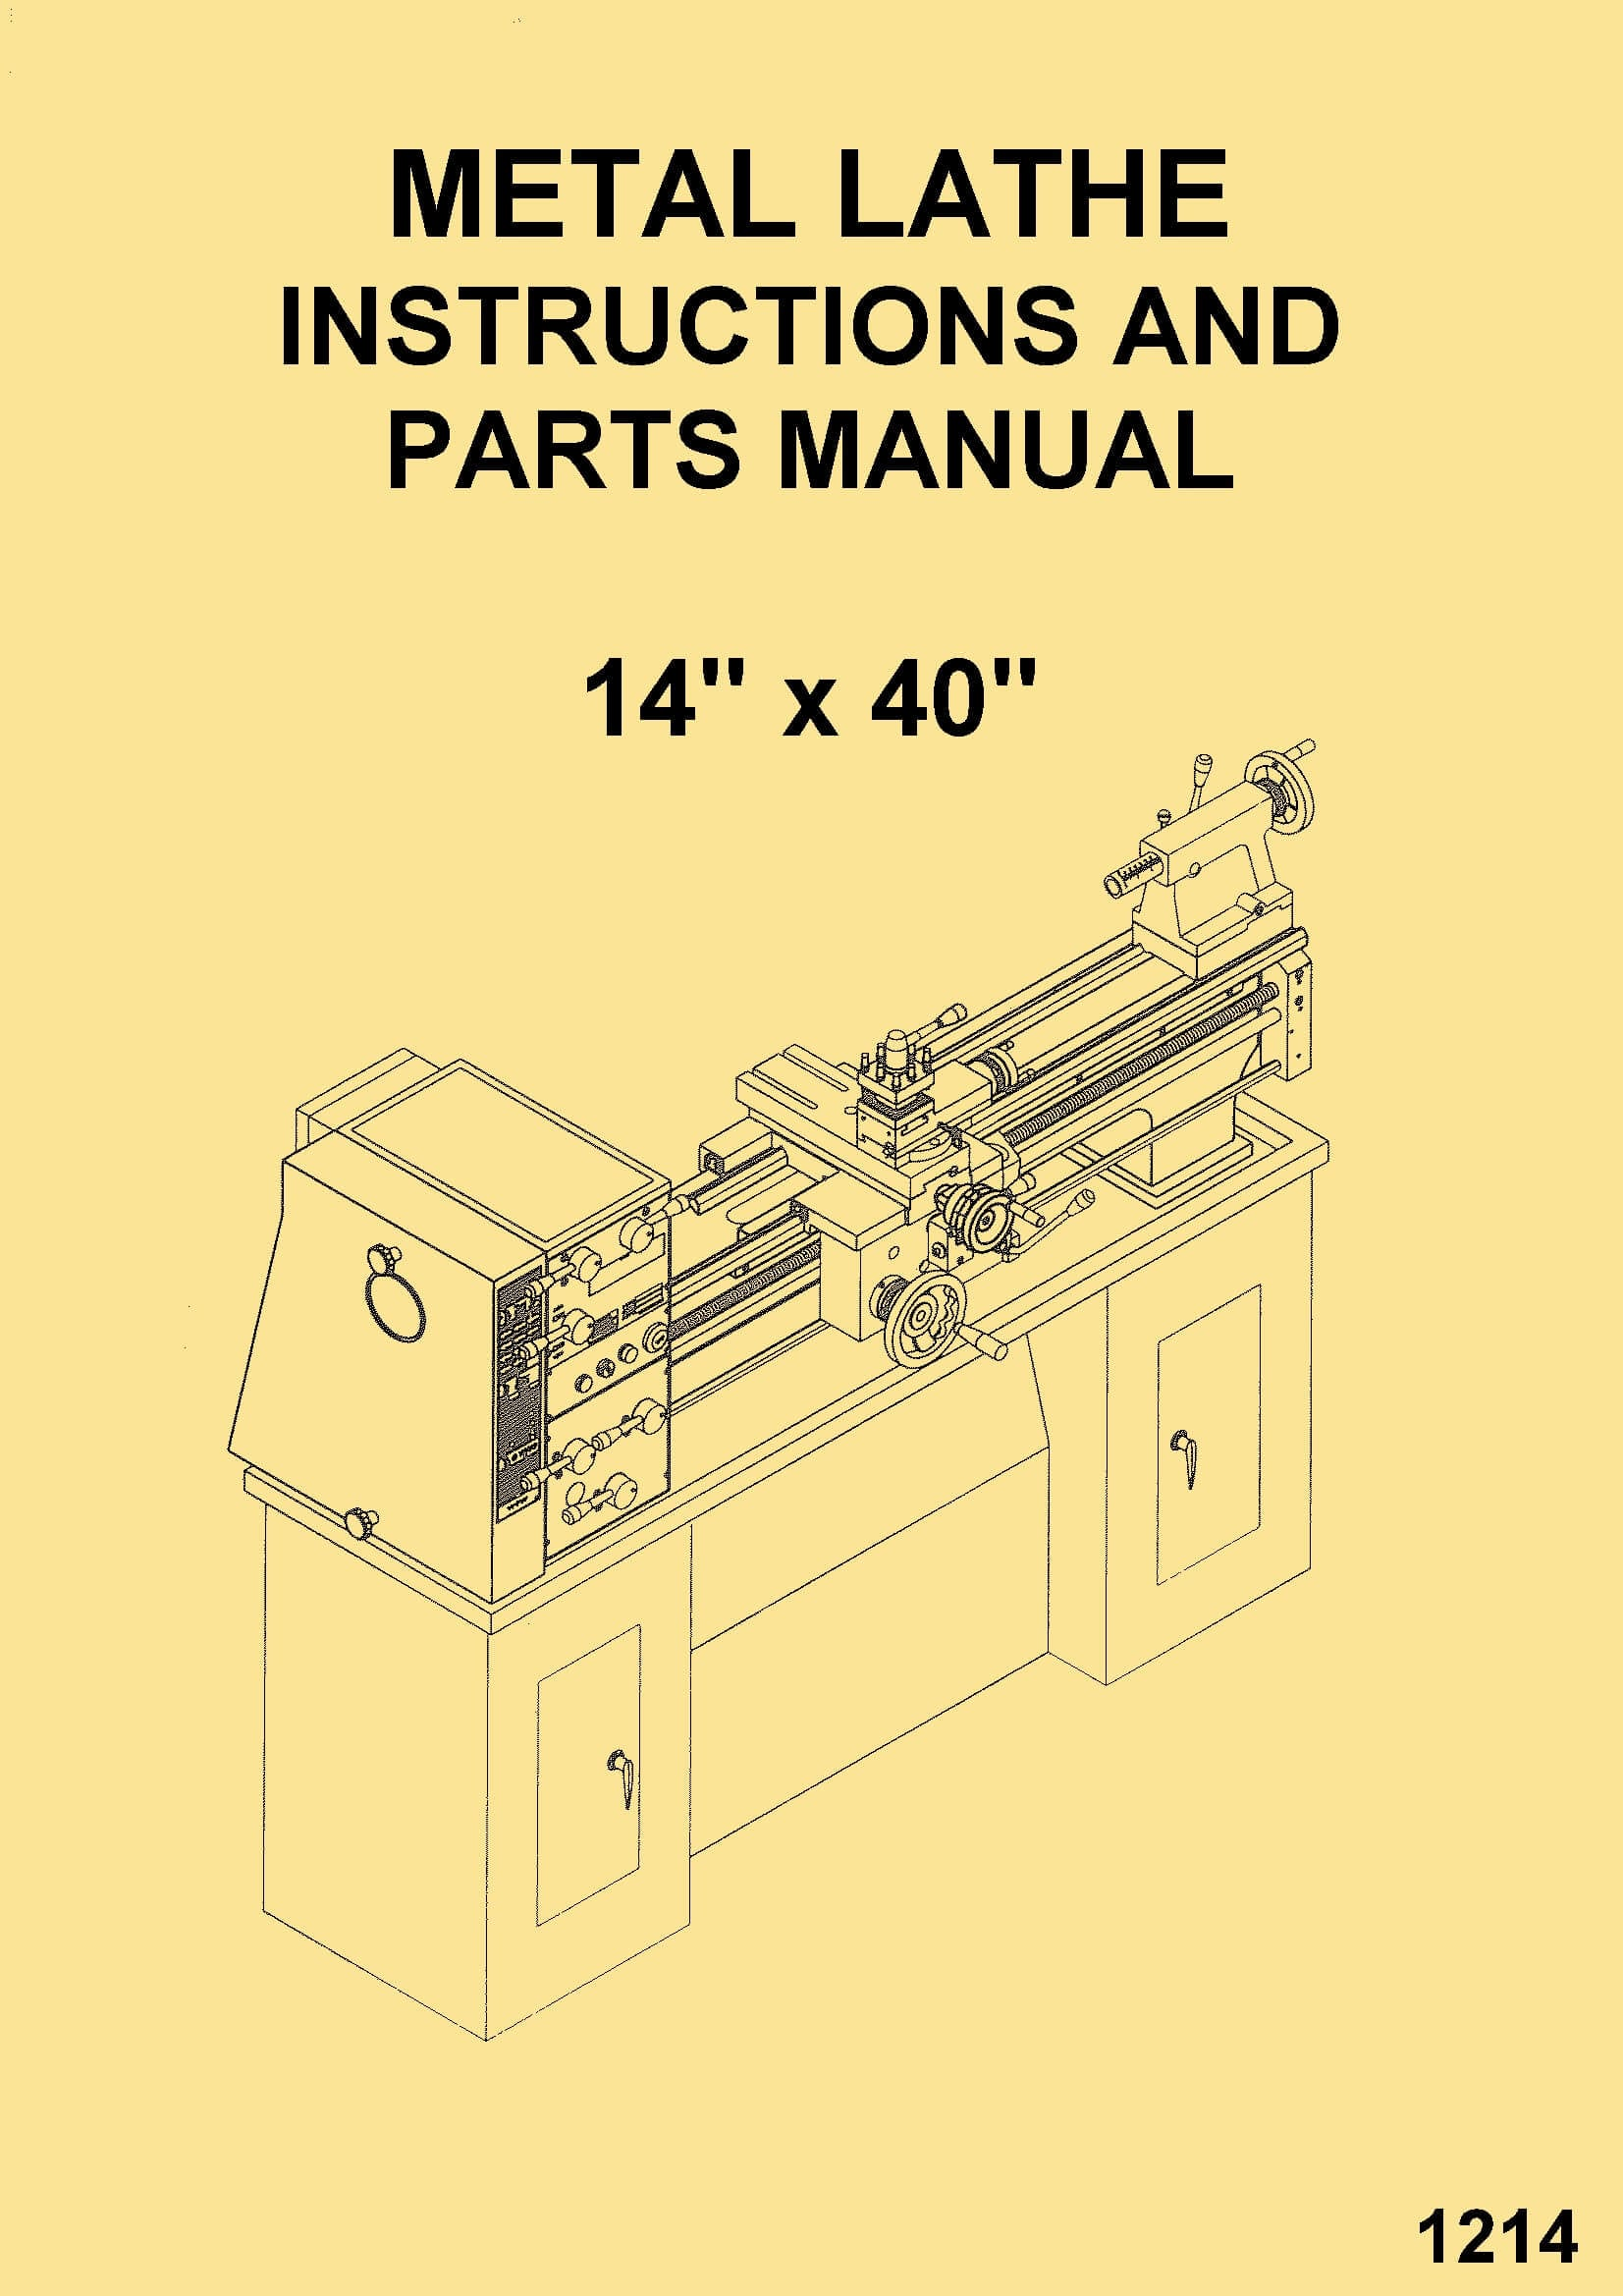 GORTON 1-22 Mastermil Milling Machine Parts Manual 0322